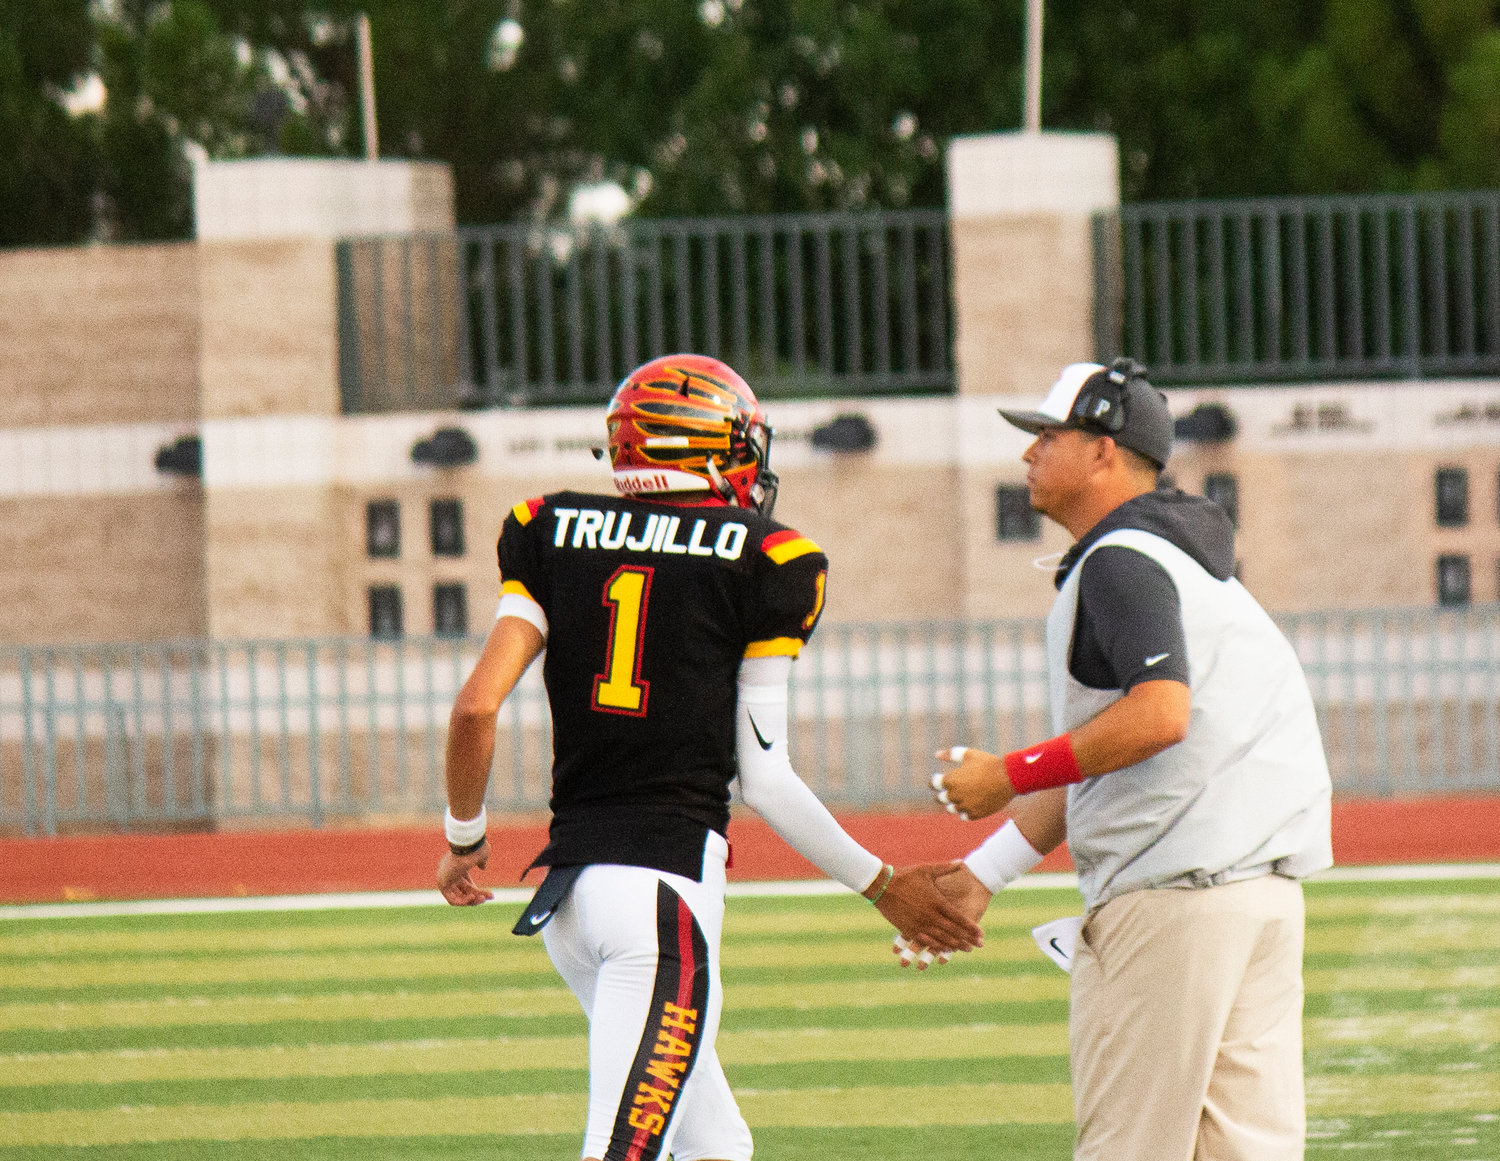 Quarterback Aiden Trujillo gets props from offensive line coach Matthew Flores.